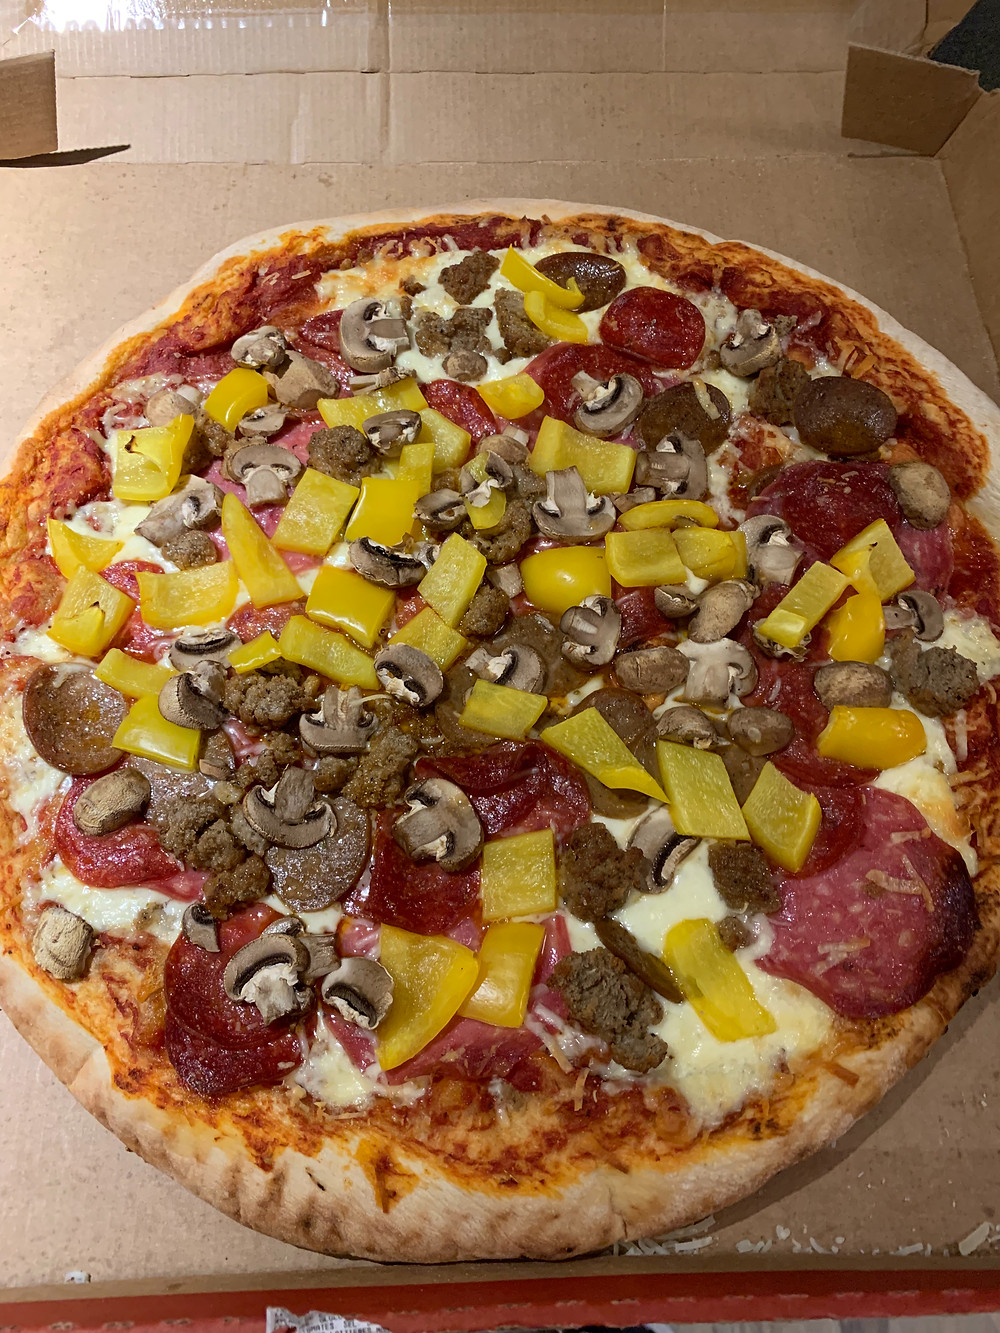 Costco Kirkland Signature Four Meat Pizza with additional toppings